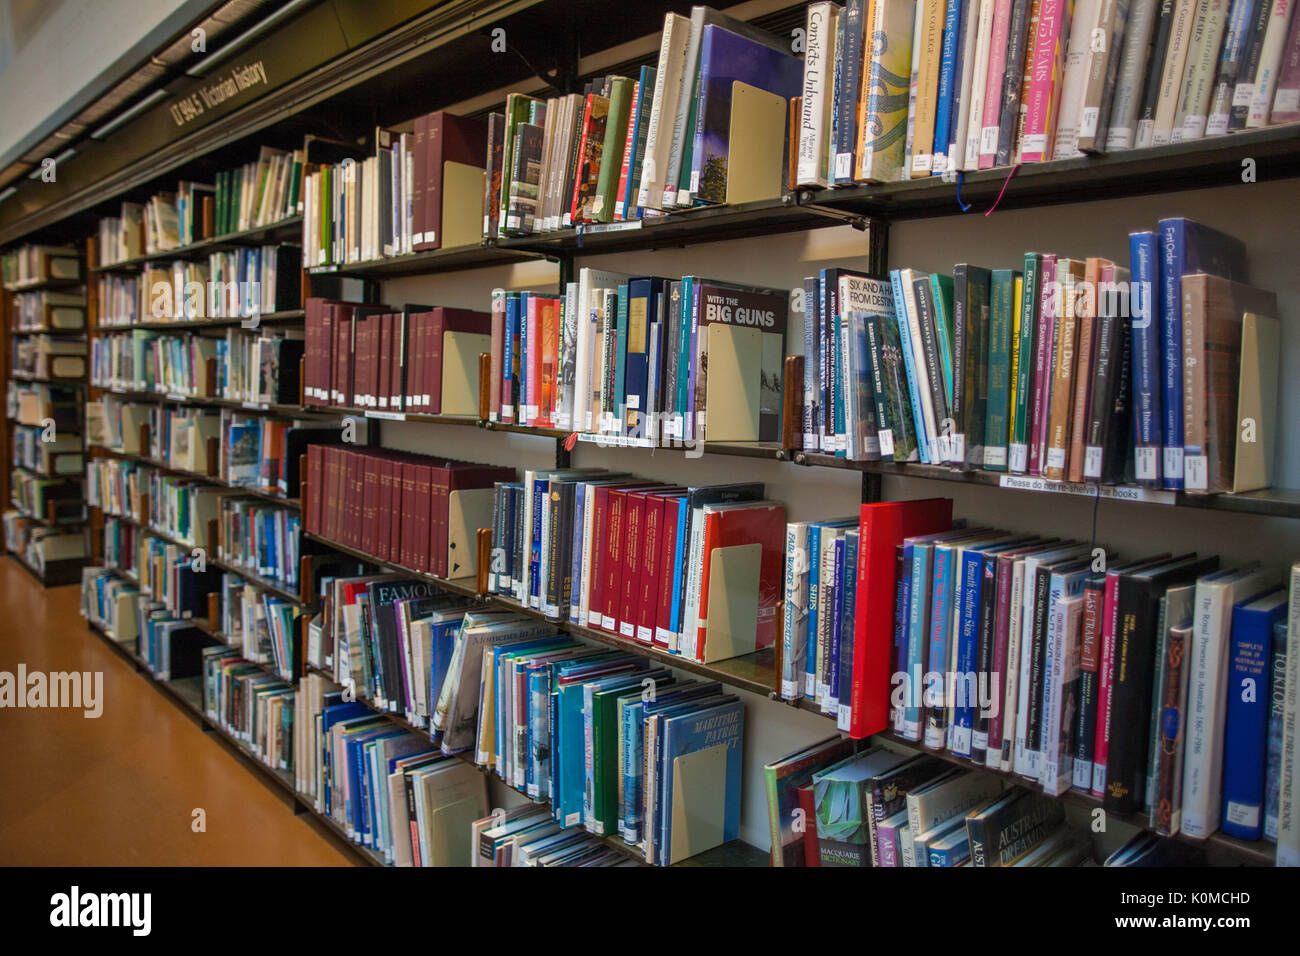 Melbourne, Australia - July 29, 2017:  Bookshelves filled with books in State Library of Victoria located in Melbourne - Stock Image